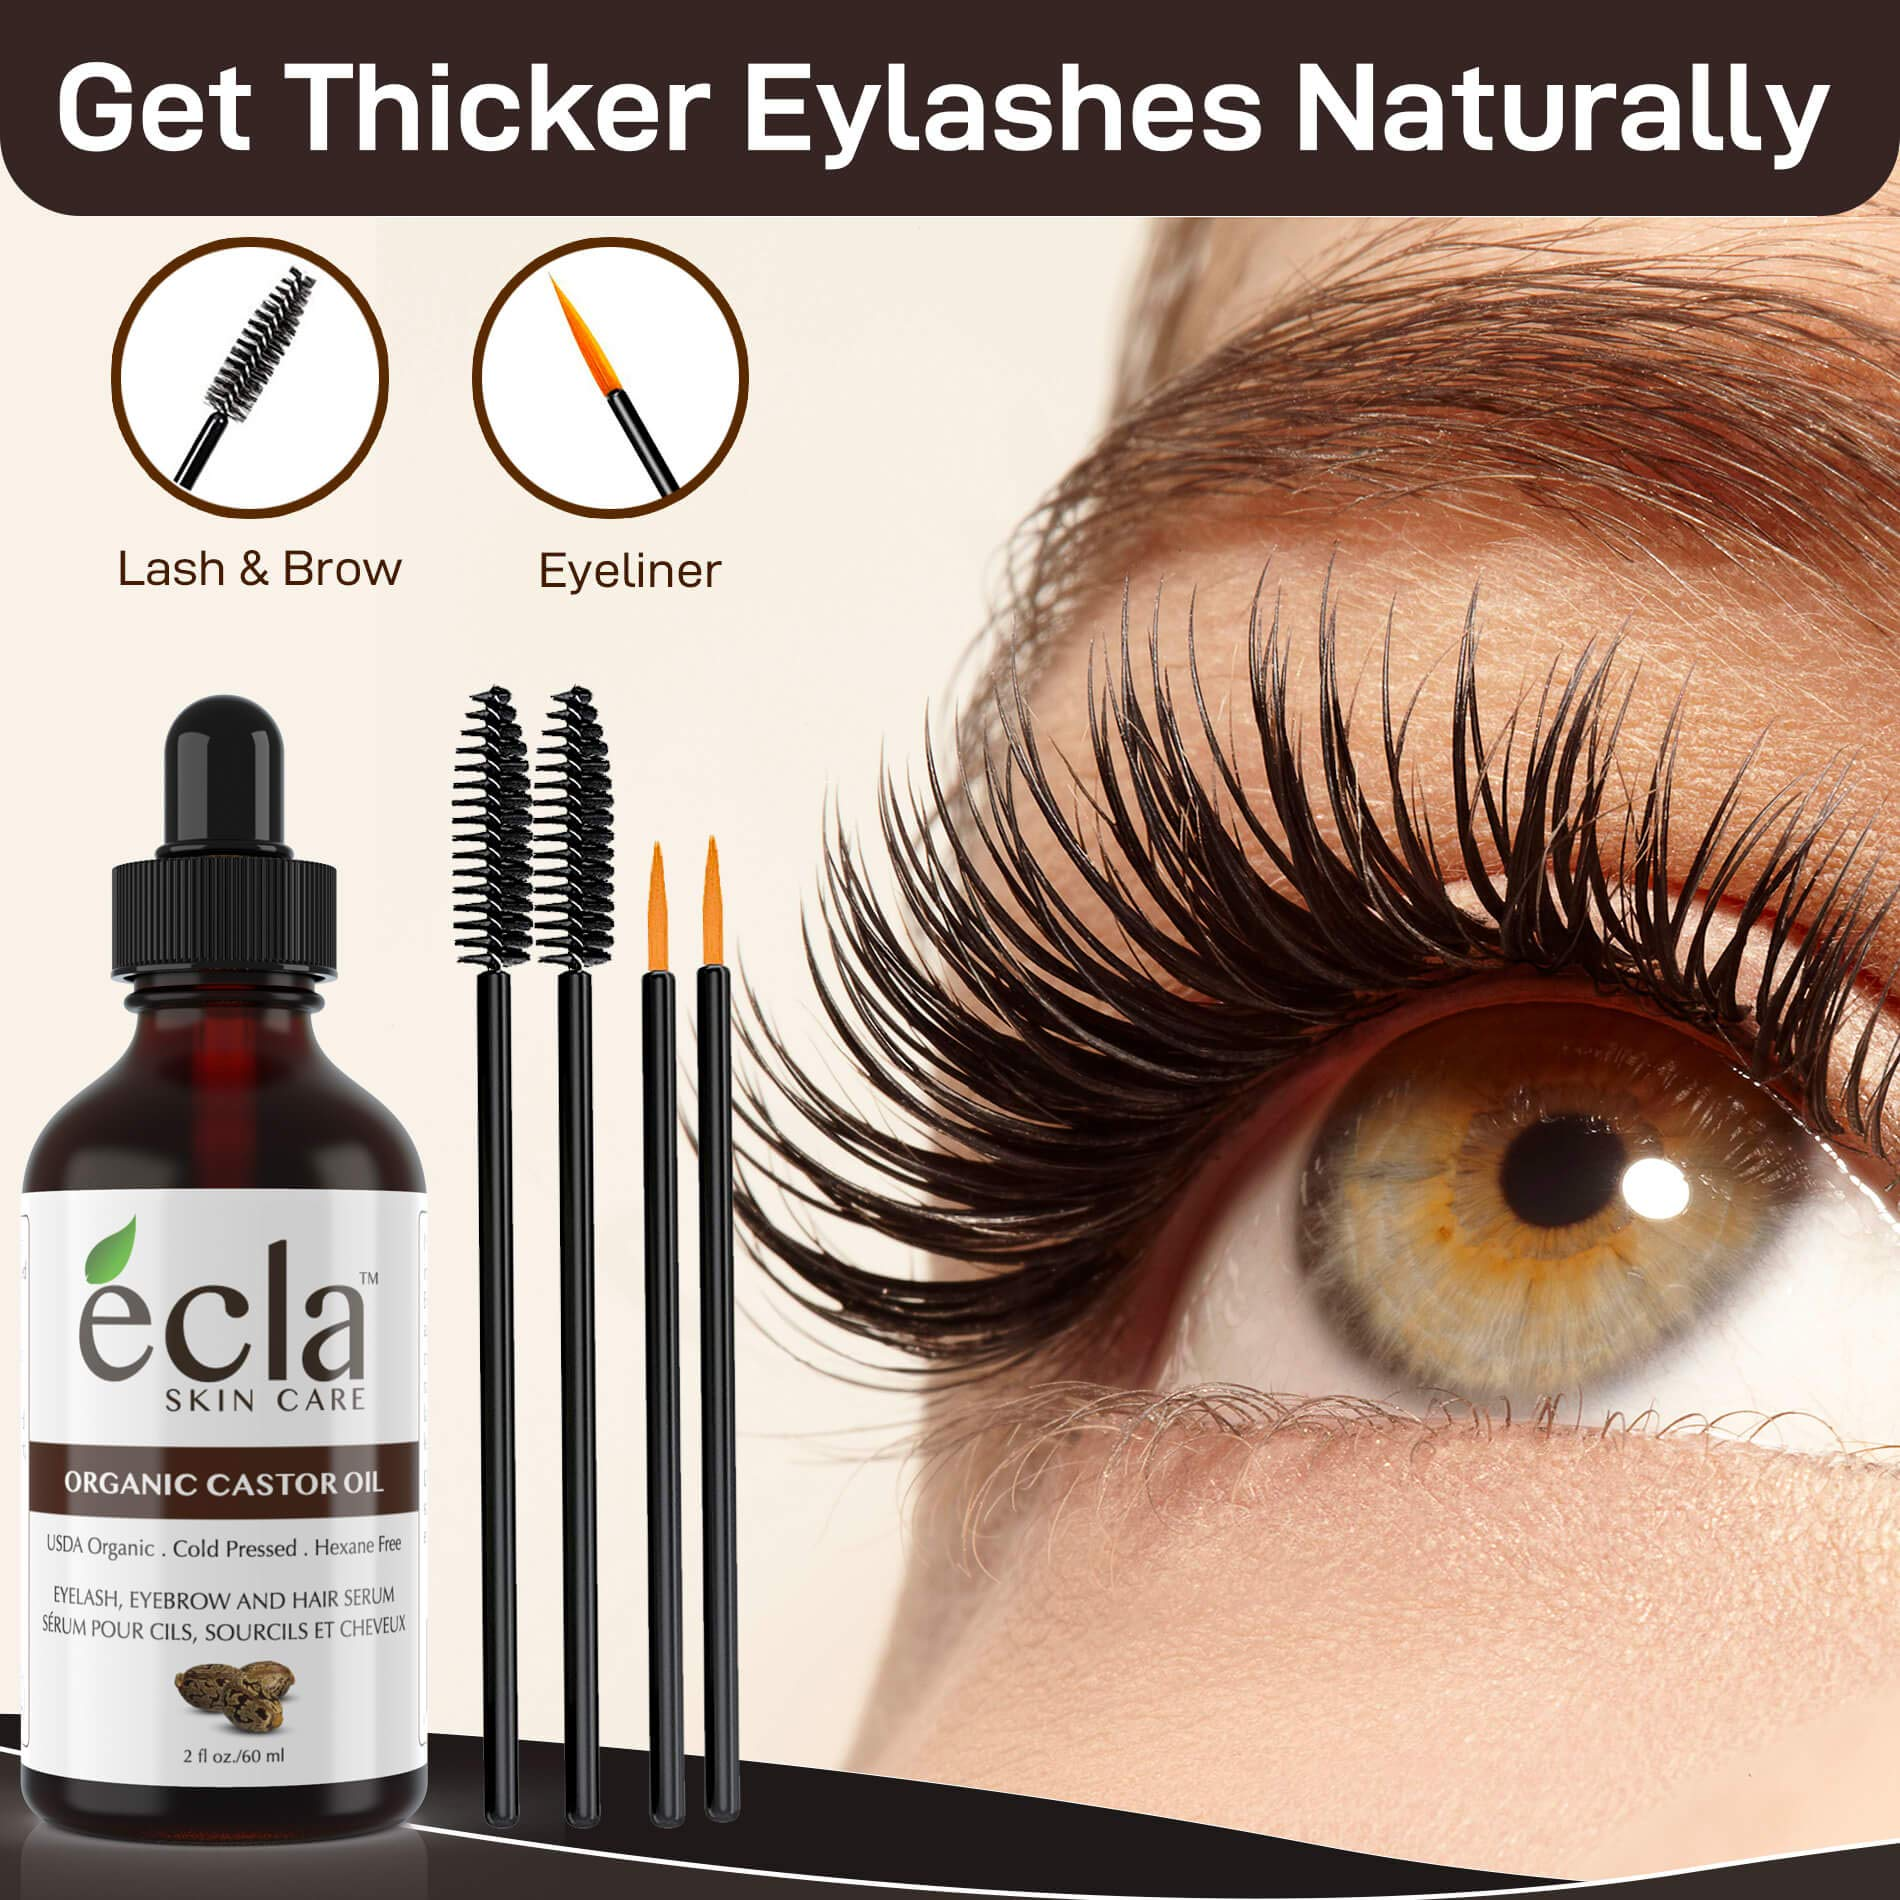 Castor Oil Organic Cold Pressed - Eyelash & Eyebrow Growth Oil 100% Pure USDA Certified (Made in Canada) 60ml - 2 Oz for Hair, Beard, Eyelashes and Eyebrows in Glass Bottle. Includes a Set of Brush & Eyeliner Applicators kit and E-Book